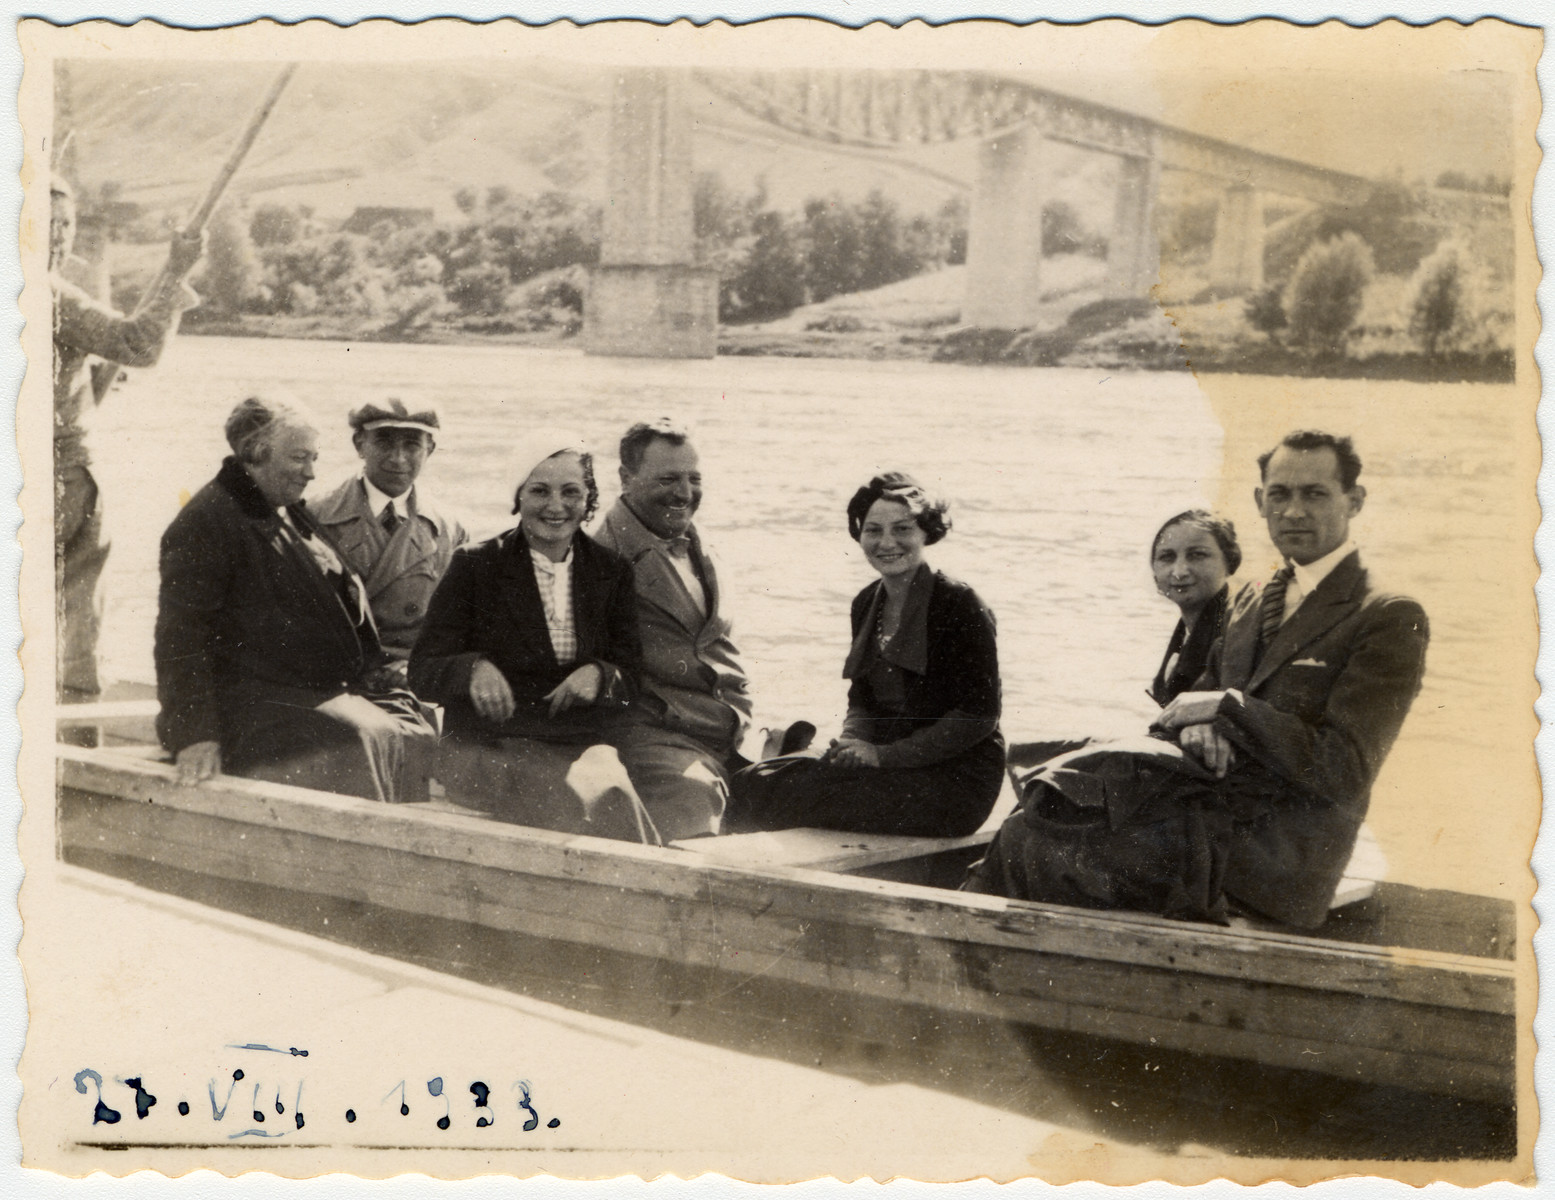 The Litman family poses in a boat in prewar Poland.  From left to right are Grandmother, Luciek, Unknown, Grandfather, Olga Litman (middle), Klara Kautzr, and Isaac Litman (far right).